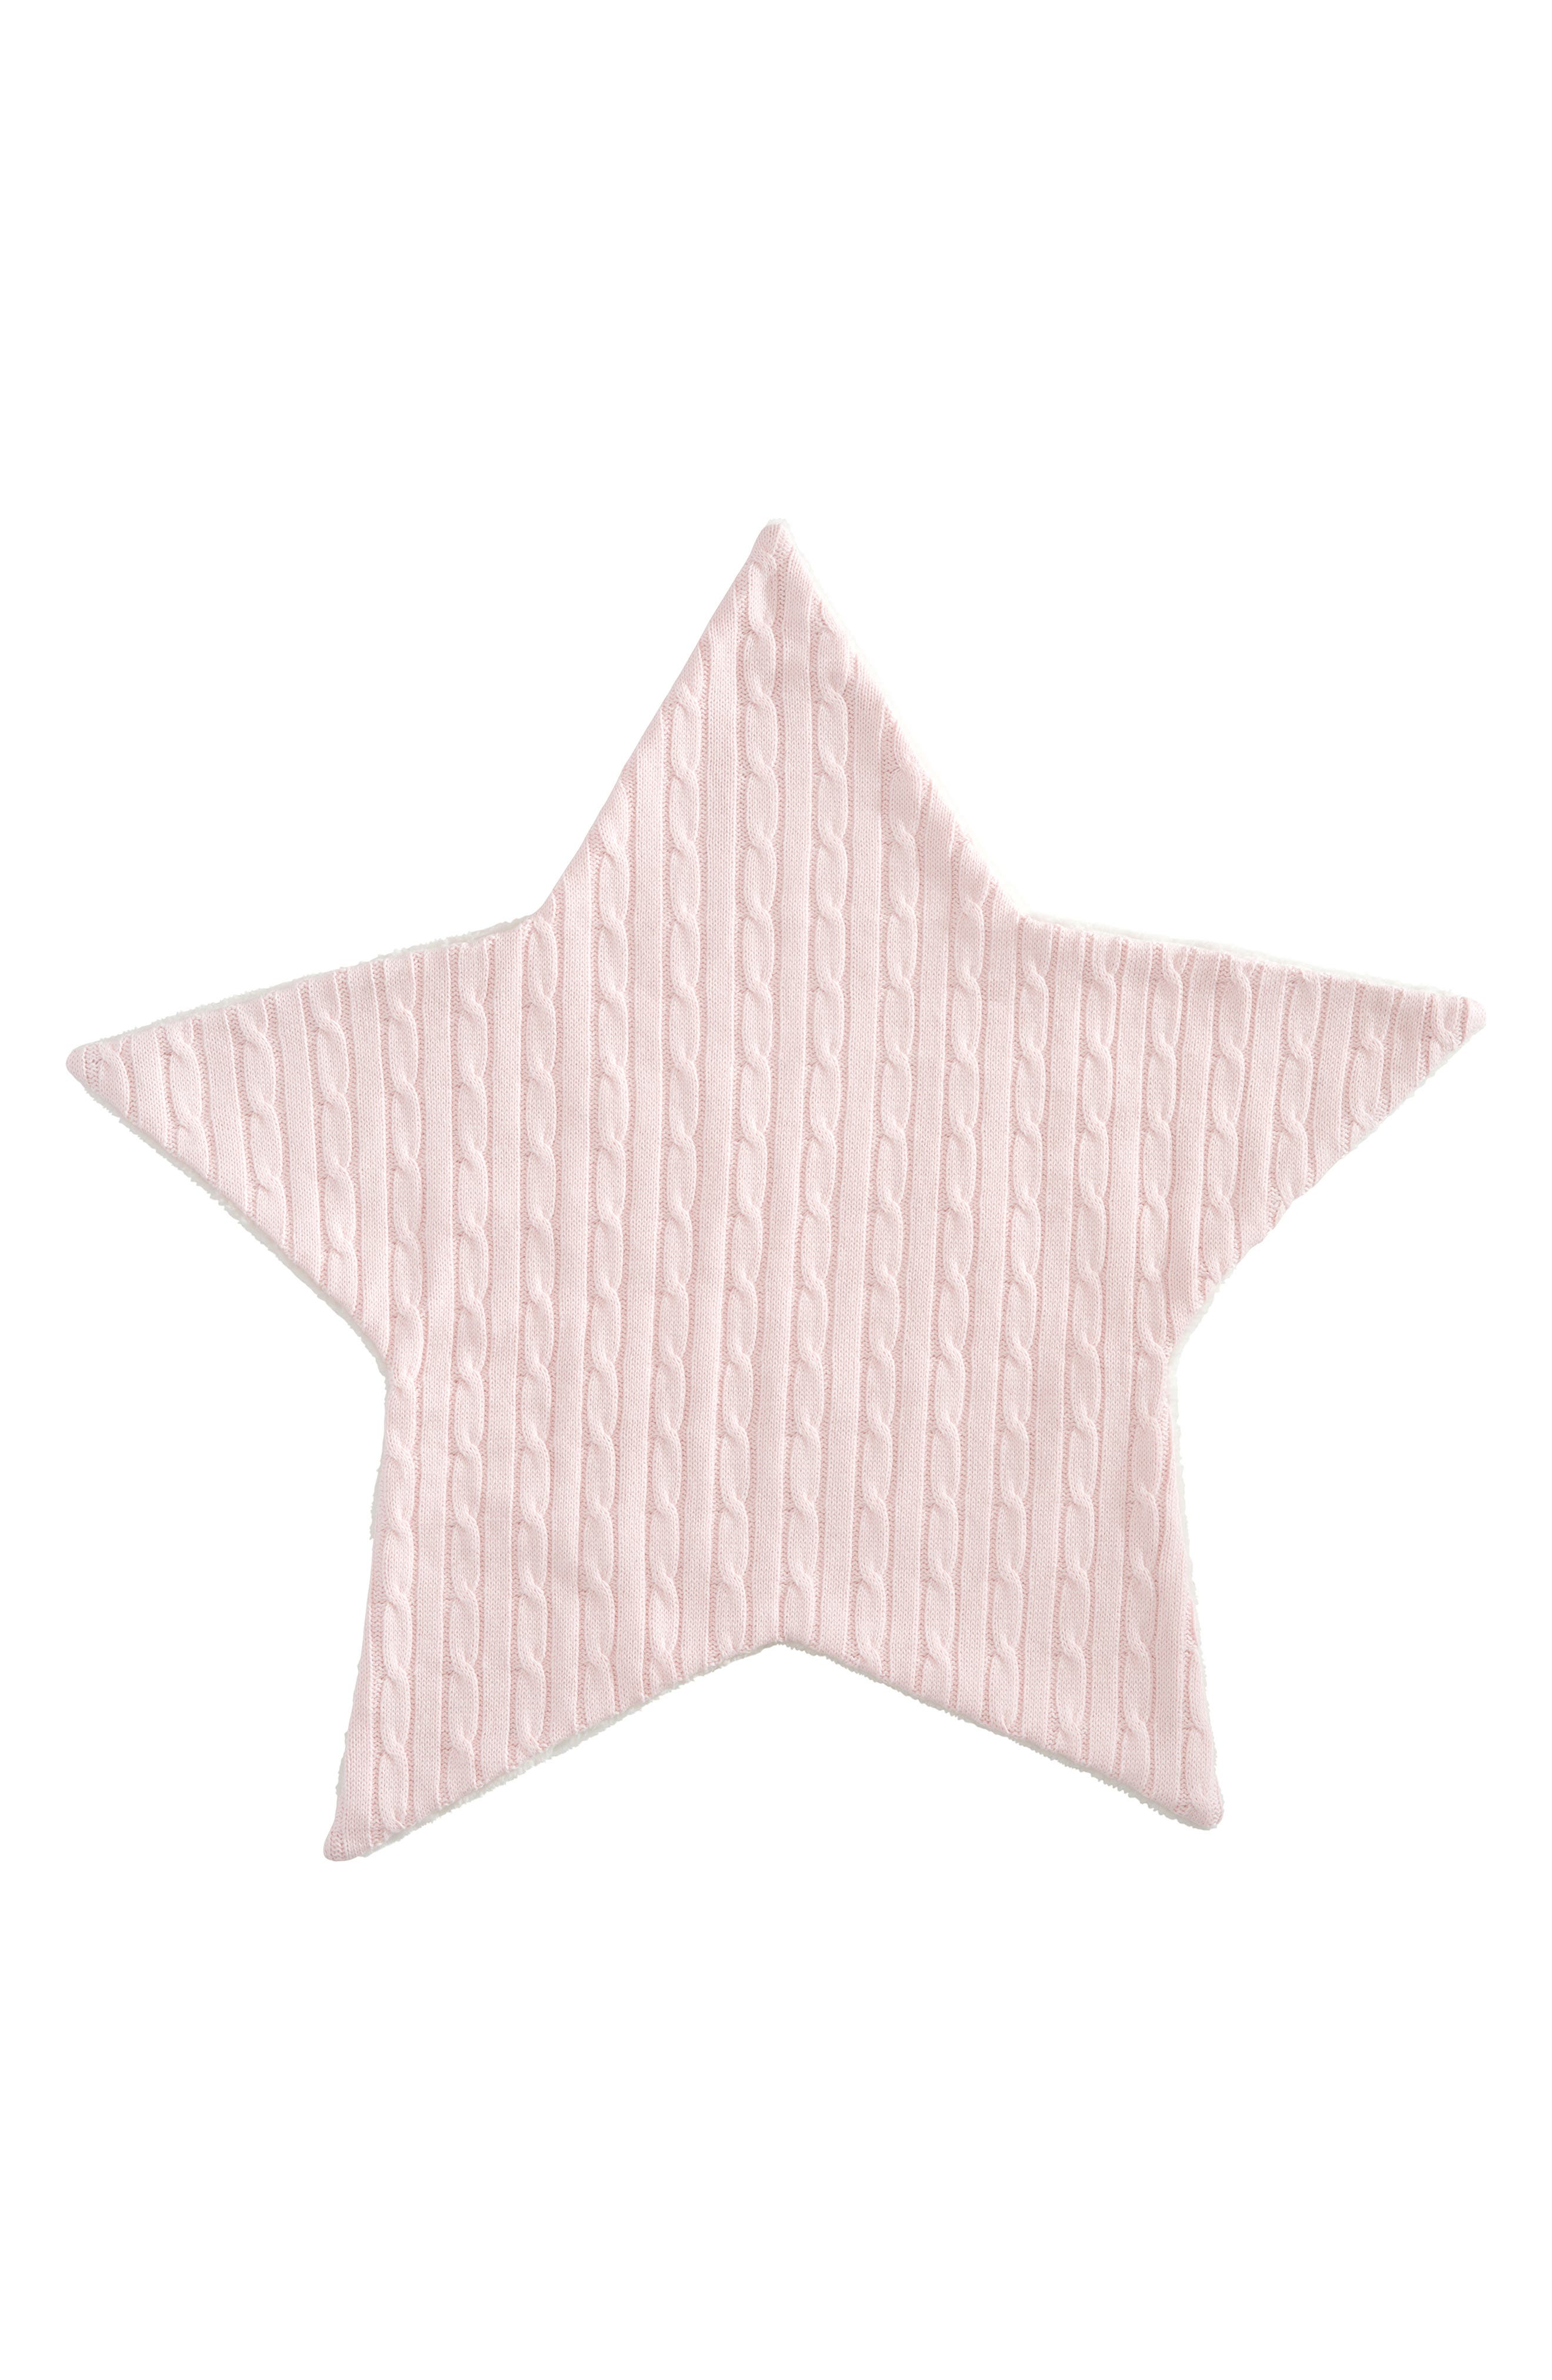 Cable Knit Star Blanket,                             Alternate thumbnail 9, color,